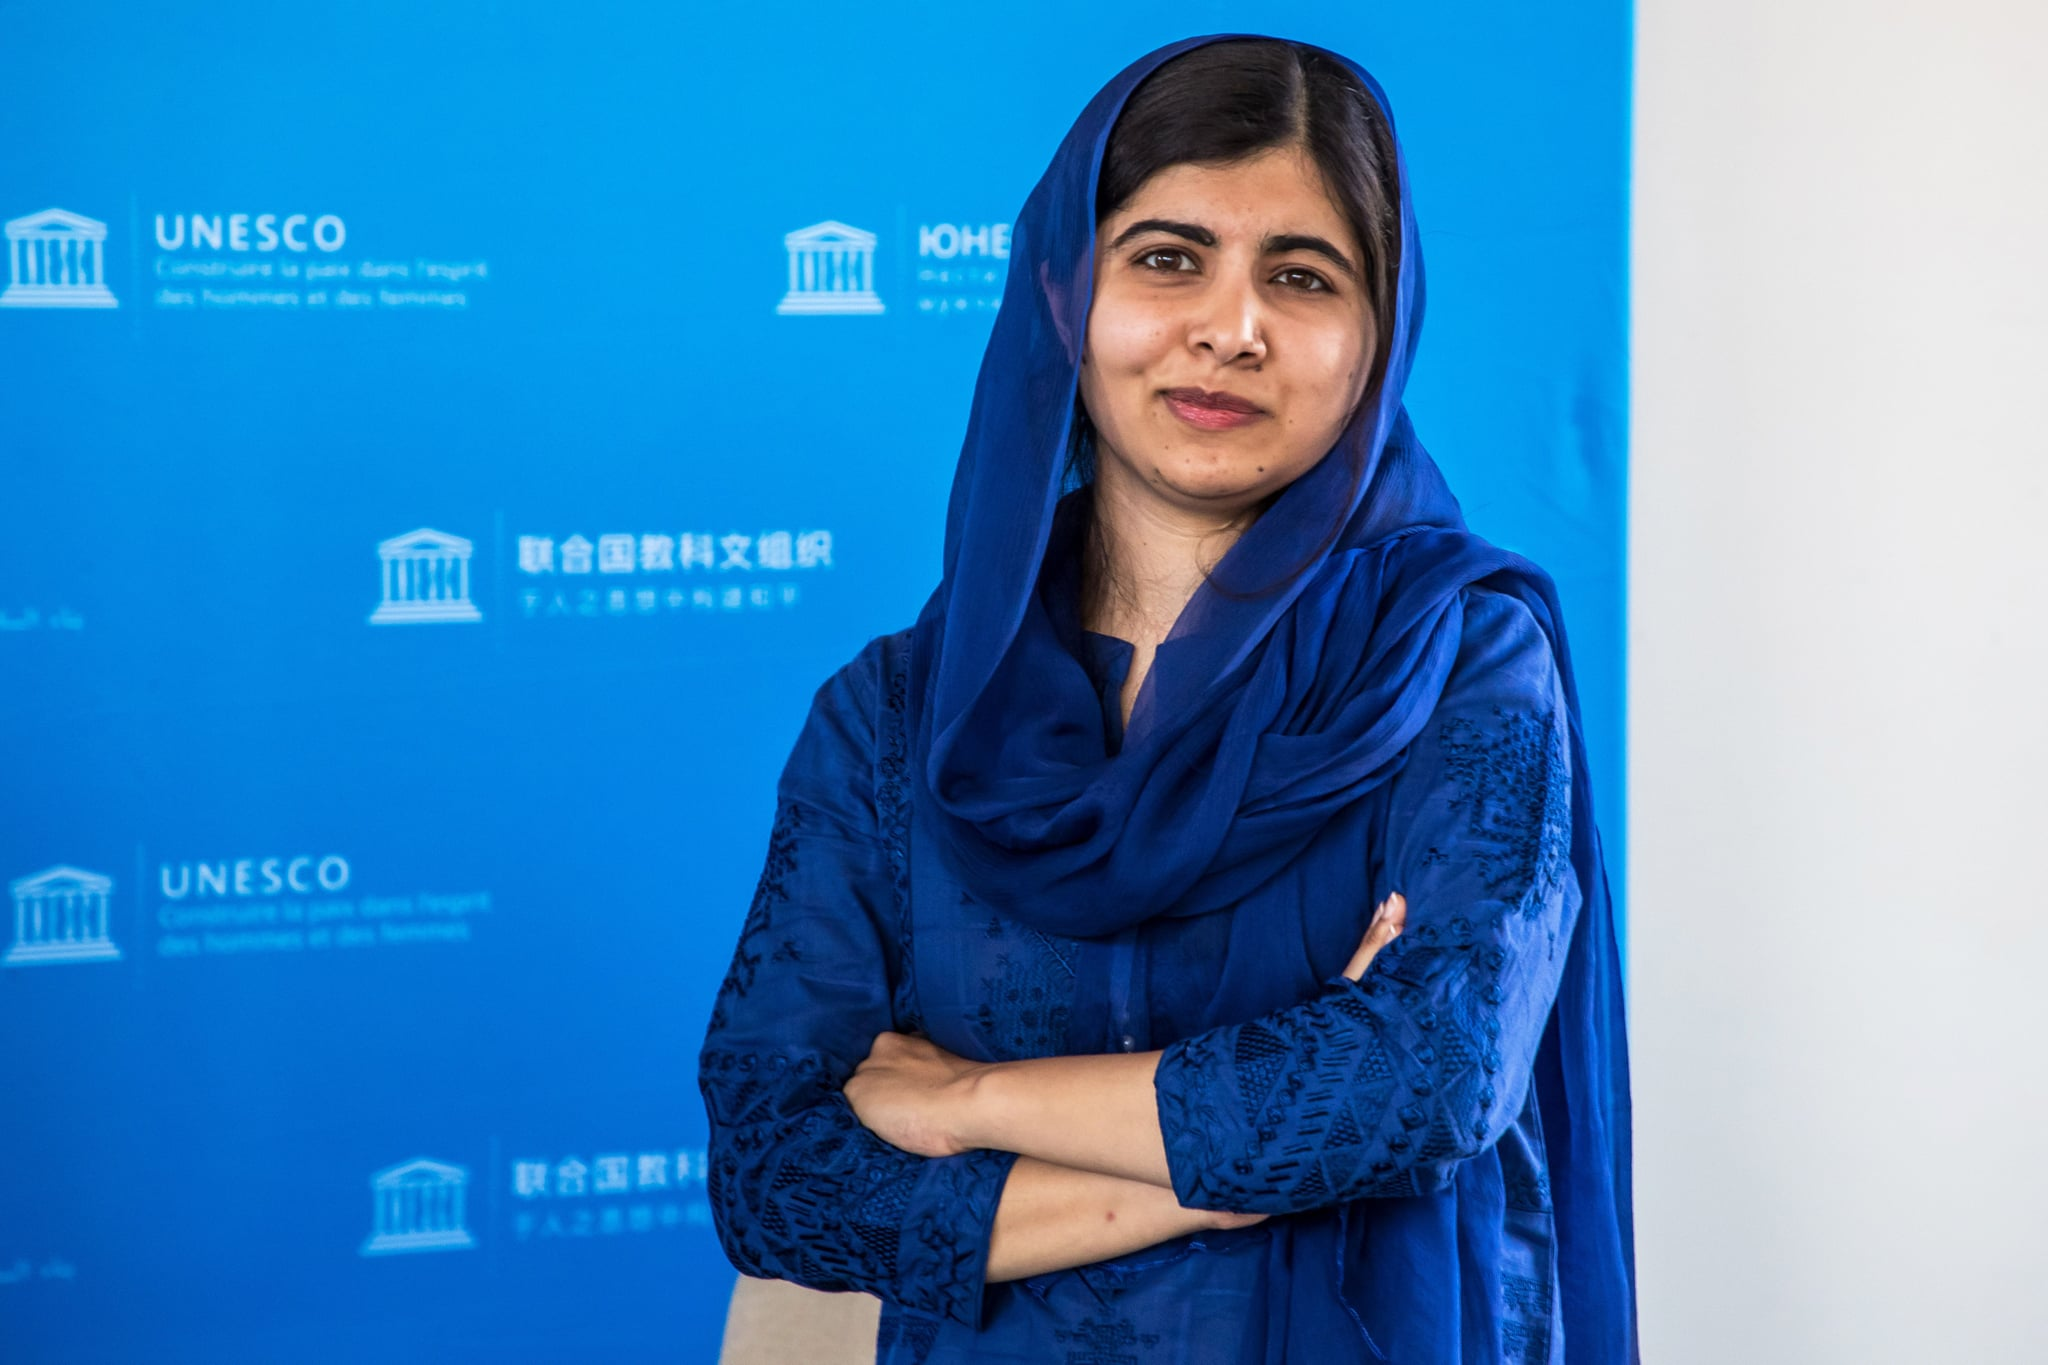 Nobel Peace Prize laureate Malala Yousafzai poses for photo session during the G7 Development and Education Ministers Meeting, in Paris, on July 5, 2019. - France is hosting the rotating presidency of the G7 in 2019. The 45th G7 Summit will be held in August 2019 in Biarritz. (Photo by Christophe PETIT TESSON / POOL / AFP)        (Photo credit should read CHRISTOPHE PETIT TESSON/AFP via Getty Images)